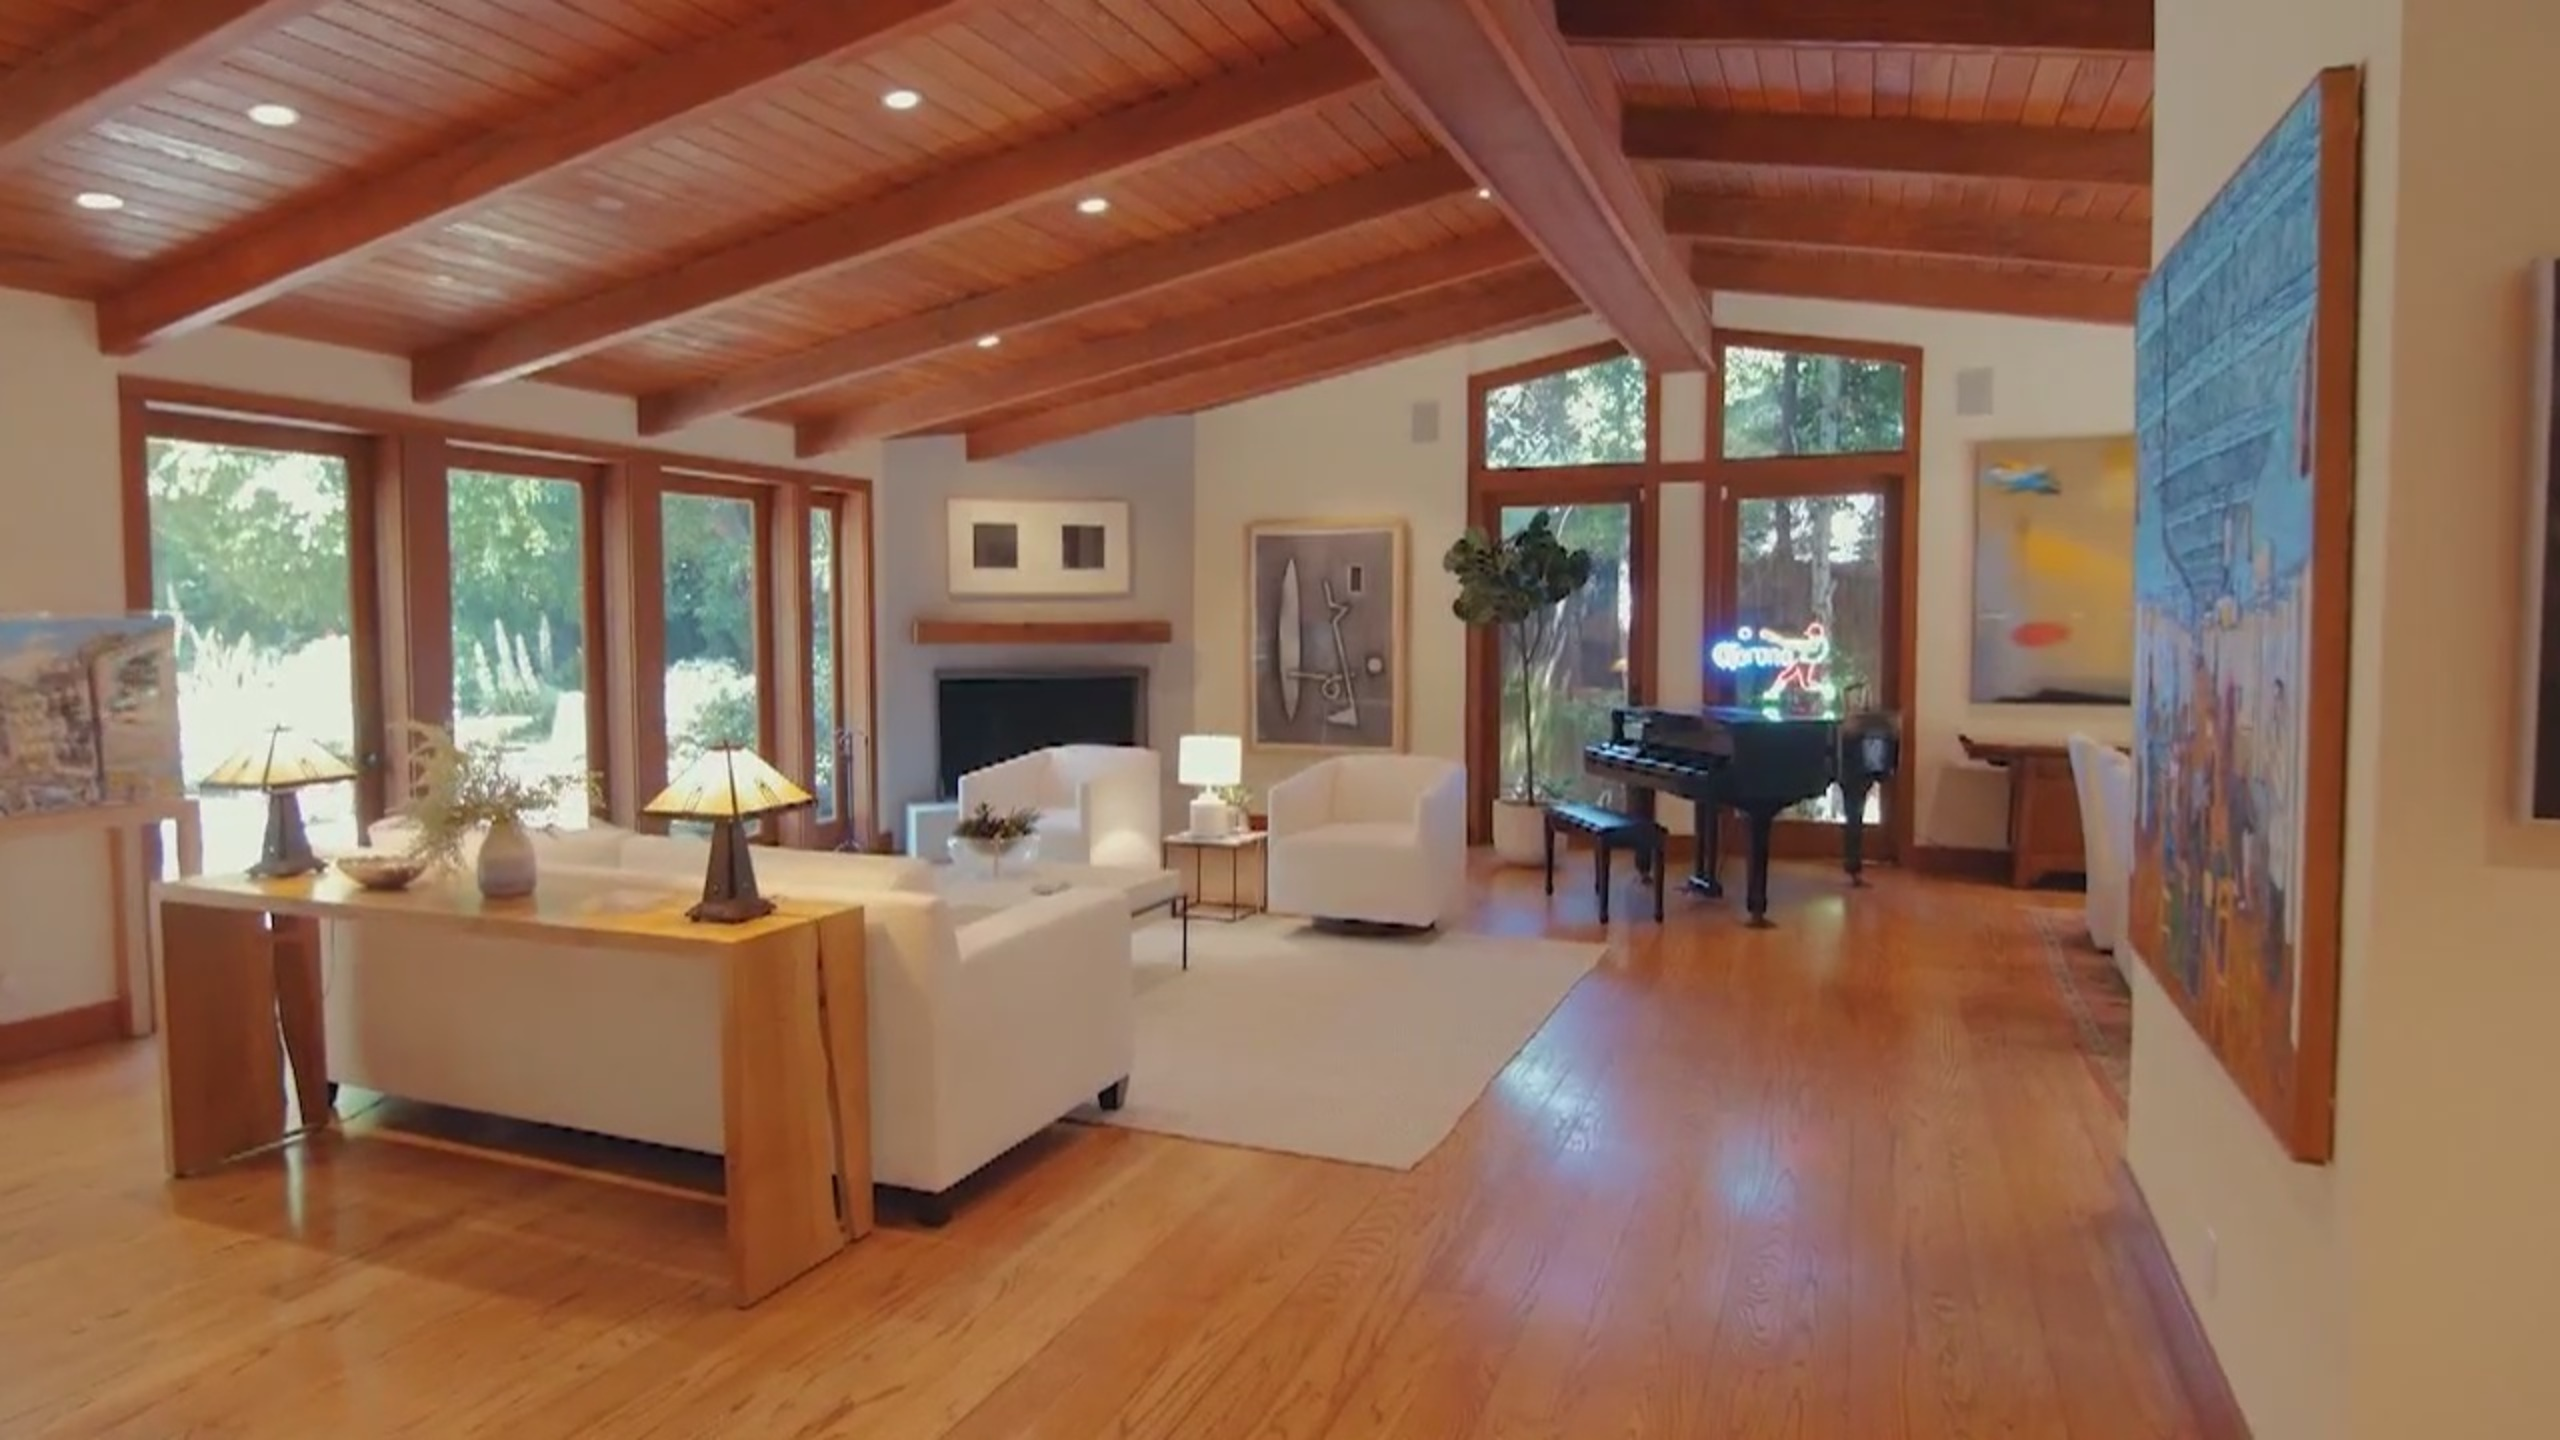 Top Property: Former TV producer selling multiple million dollar Pacific Palisades home